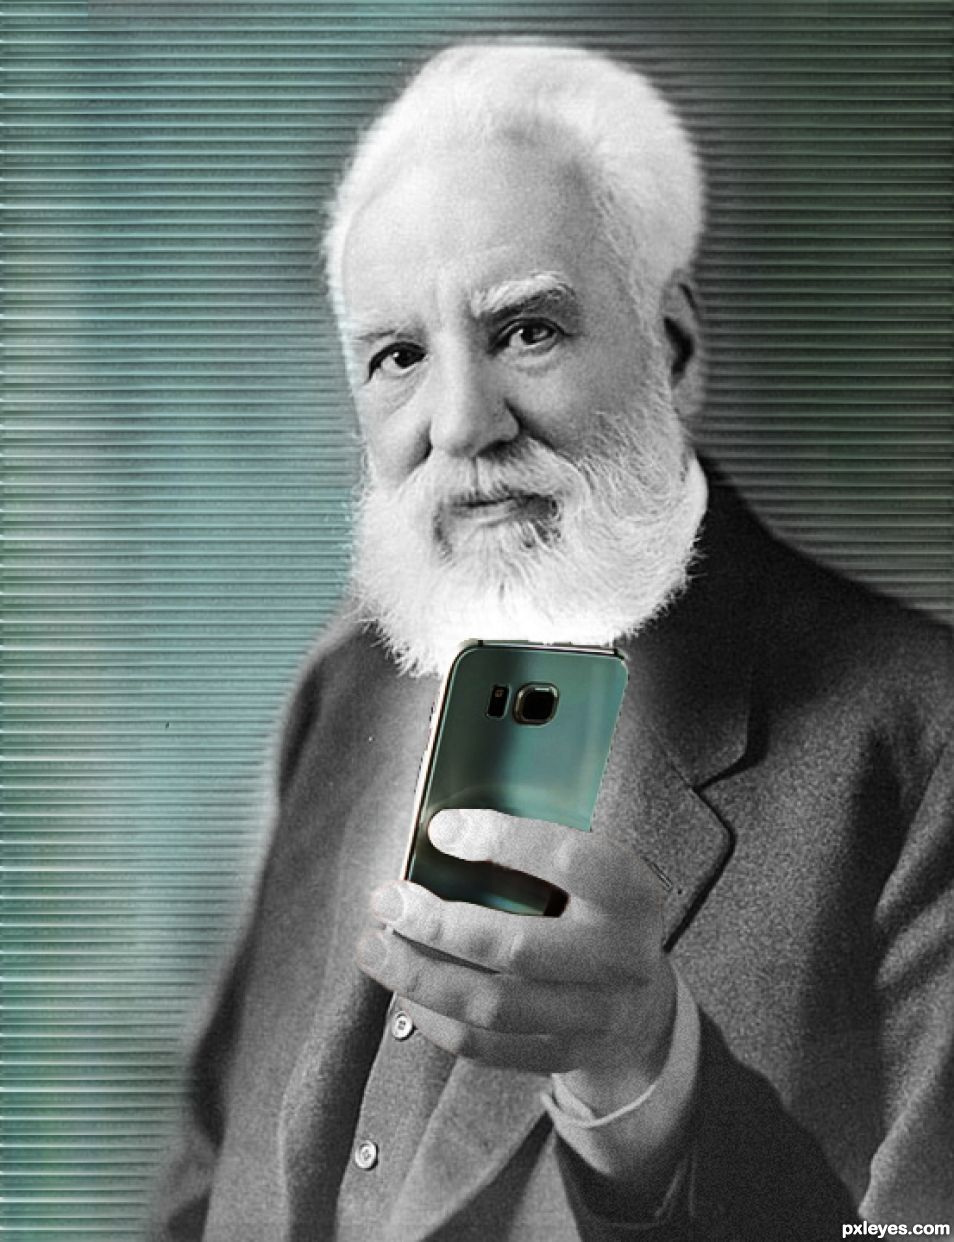 Graham Bell about to take a selfie